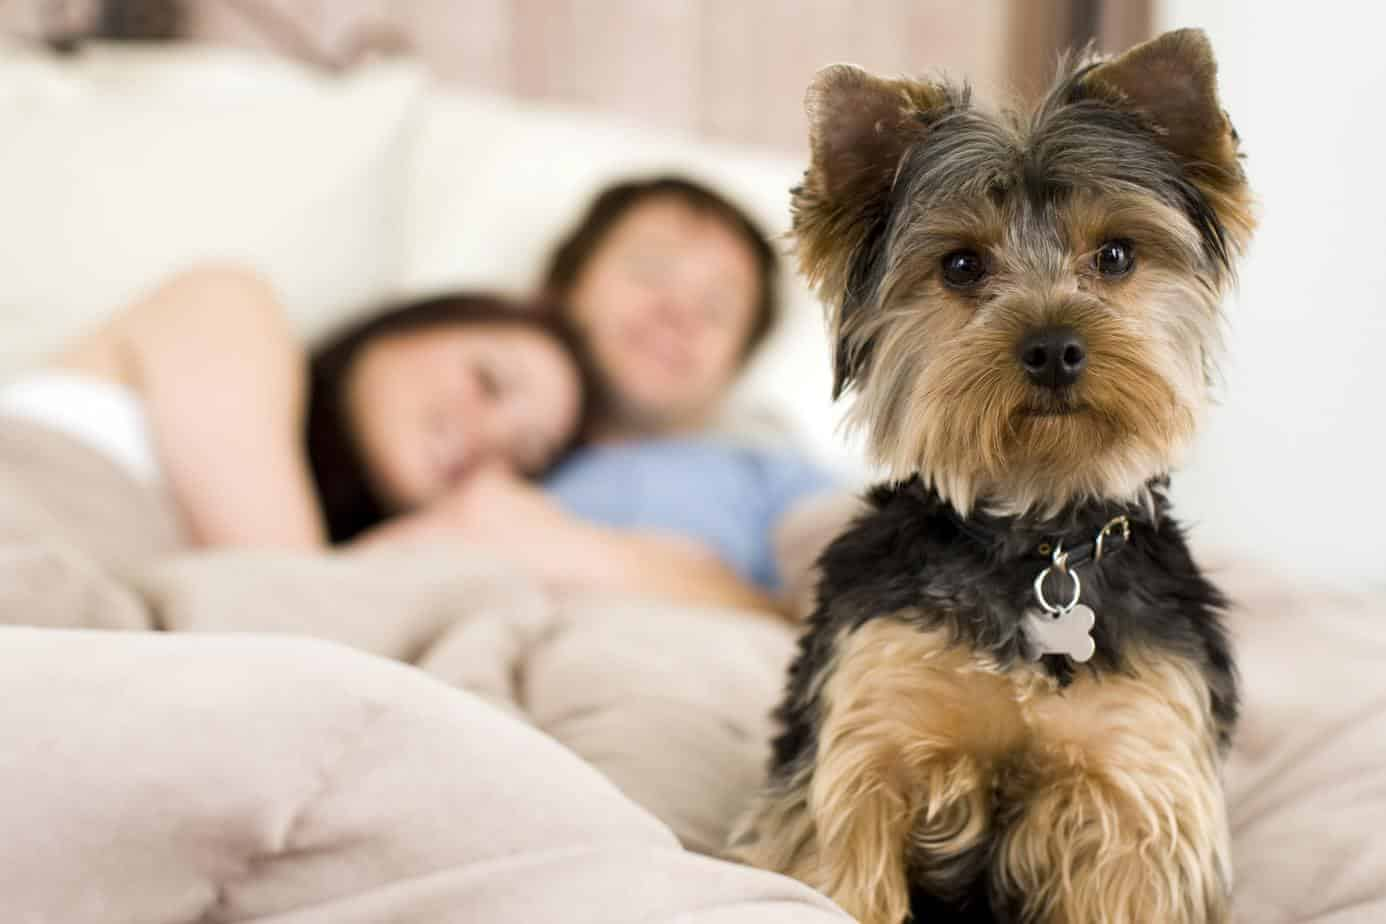 Millennials sleep as pet Yorkie keeps guard. Millennials choose dogs over kids due to cost.